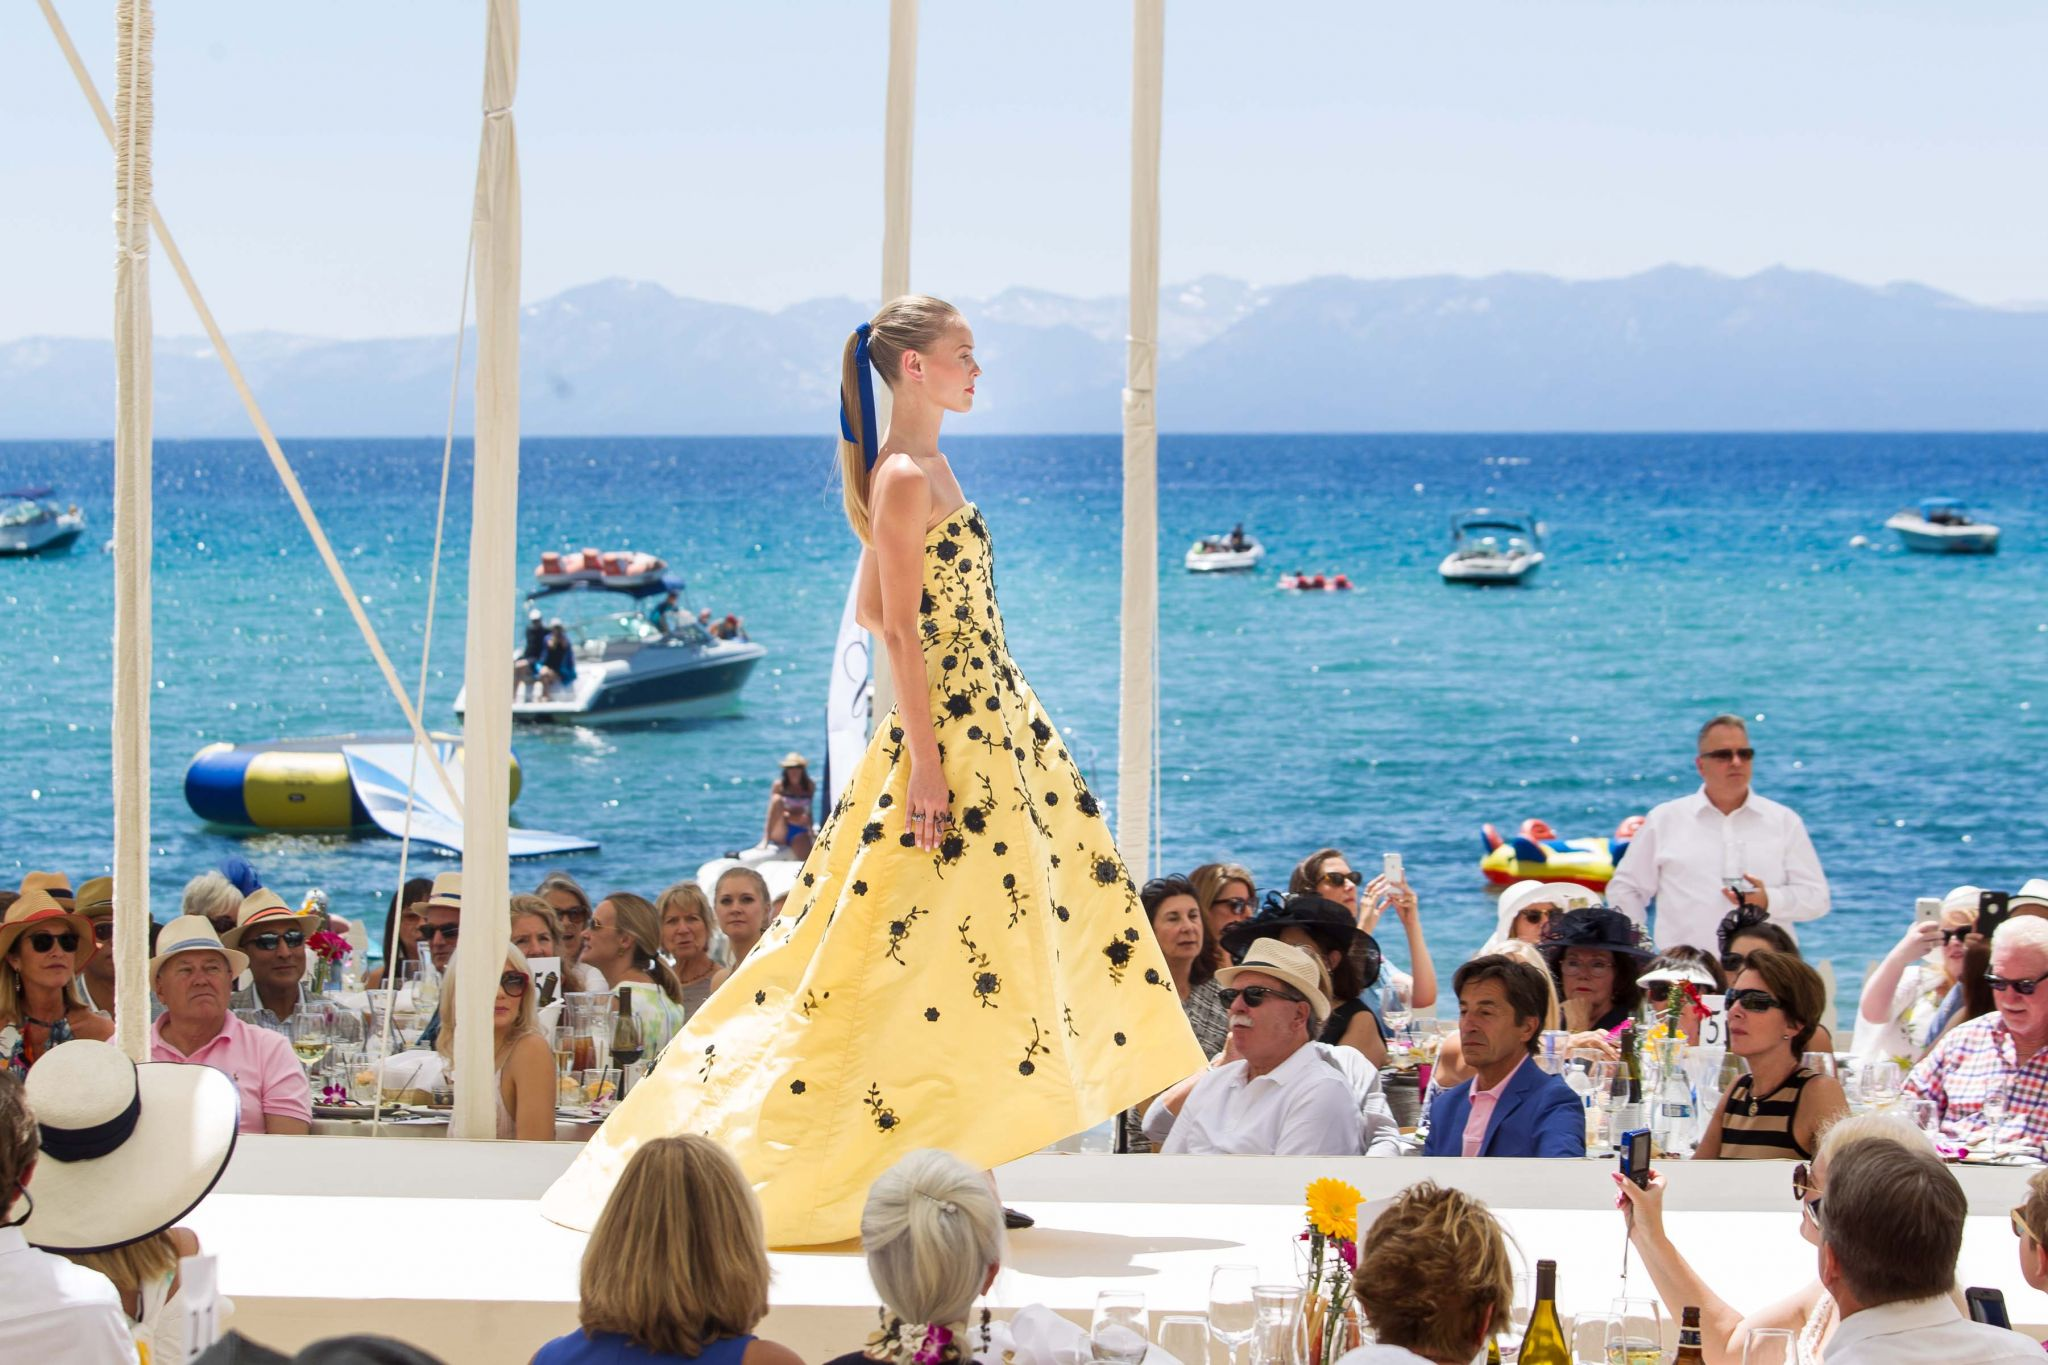 Save Lake Tahoe Oscar de la Renta Fashion Show - SFGate